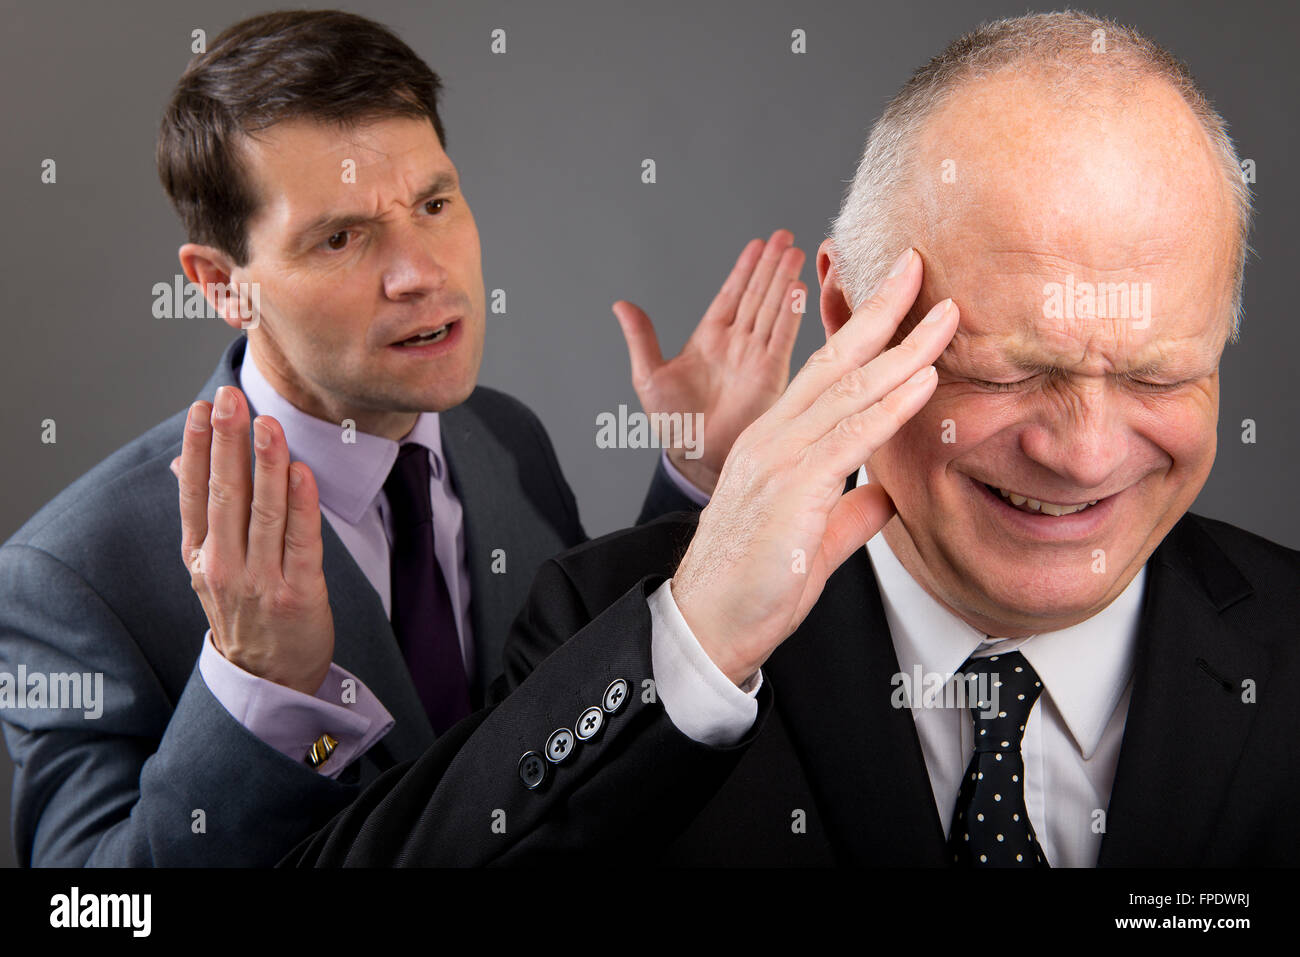 Tearful/stressed businessman in the foreground, with work colleague making open hands gesture behind him. - Stock Image